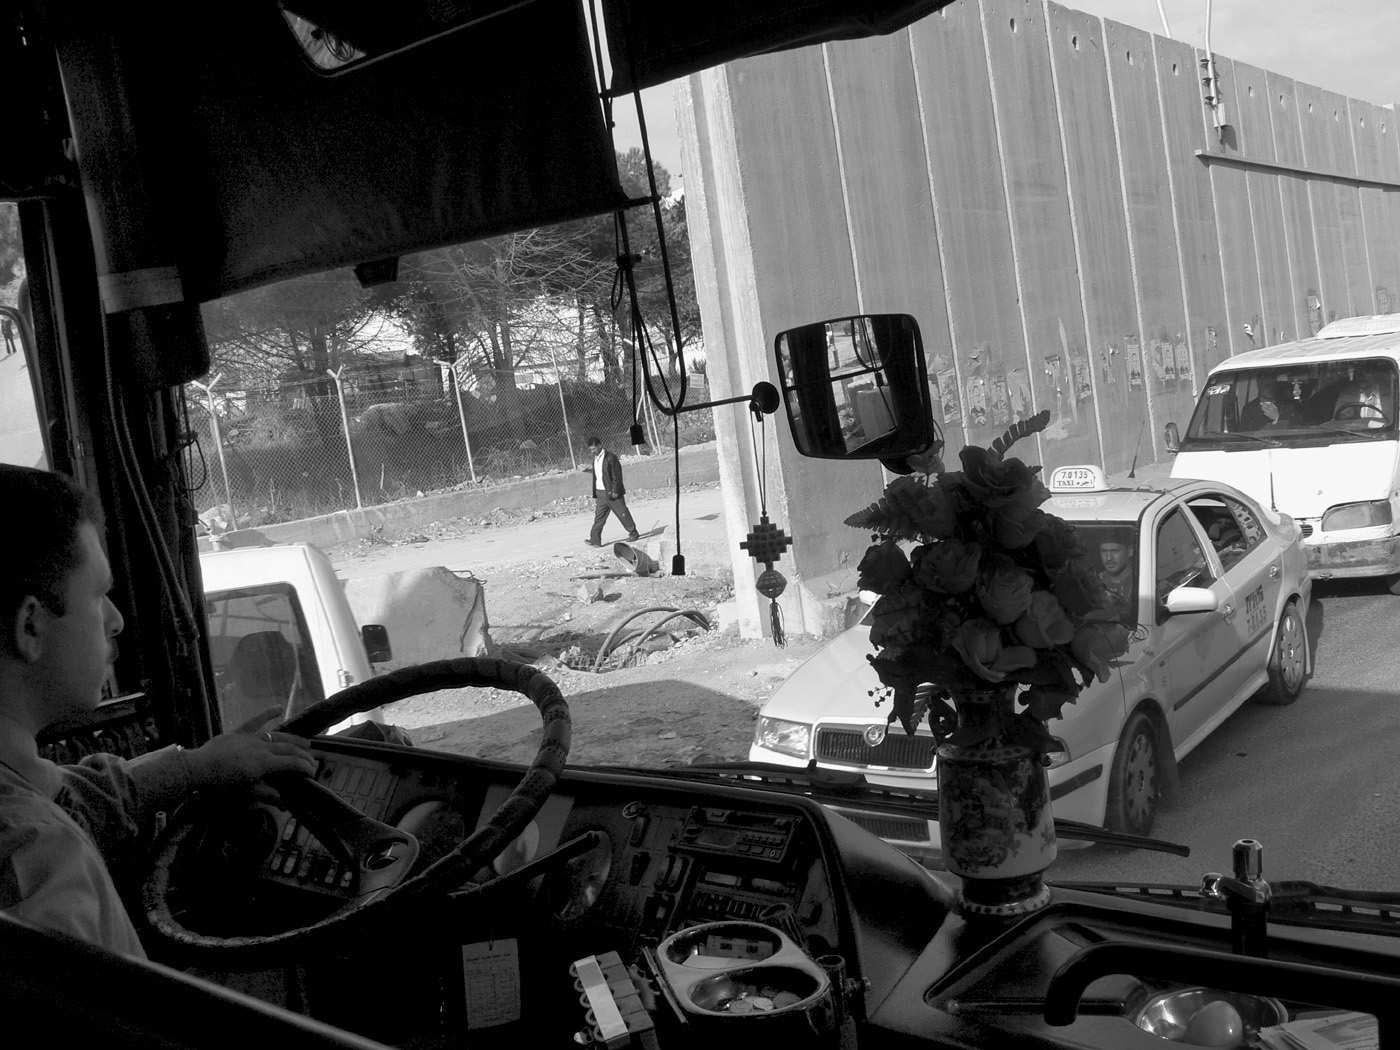 A view of a concrete wall and traffic from a bus windshield